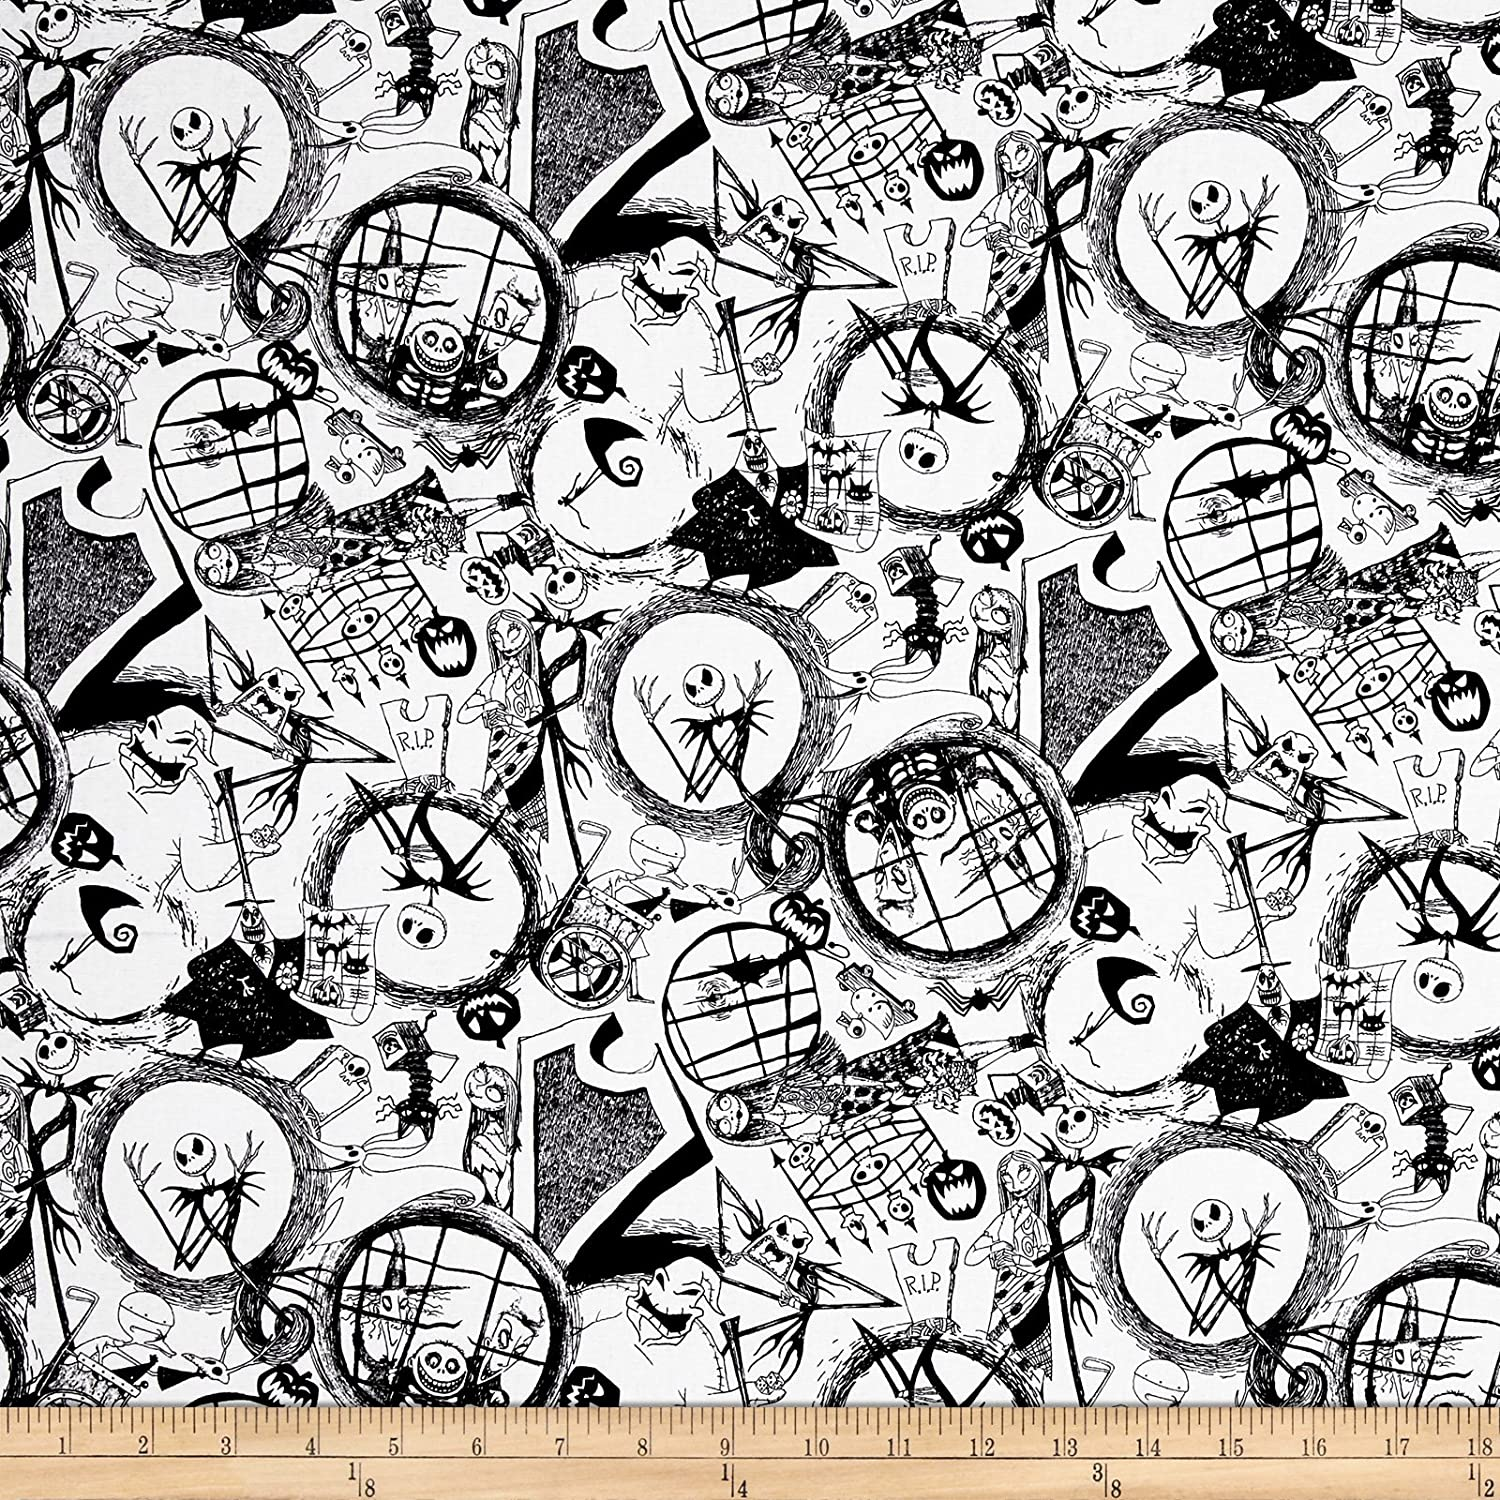 Springs Creative Products Disney Nightmare Before Christmas Tossed World of Nightmare Before Christmas Black Fabric by The Yard E. E. Schenck